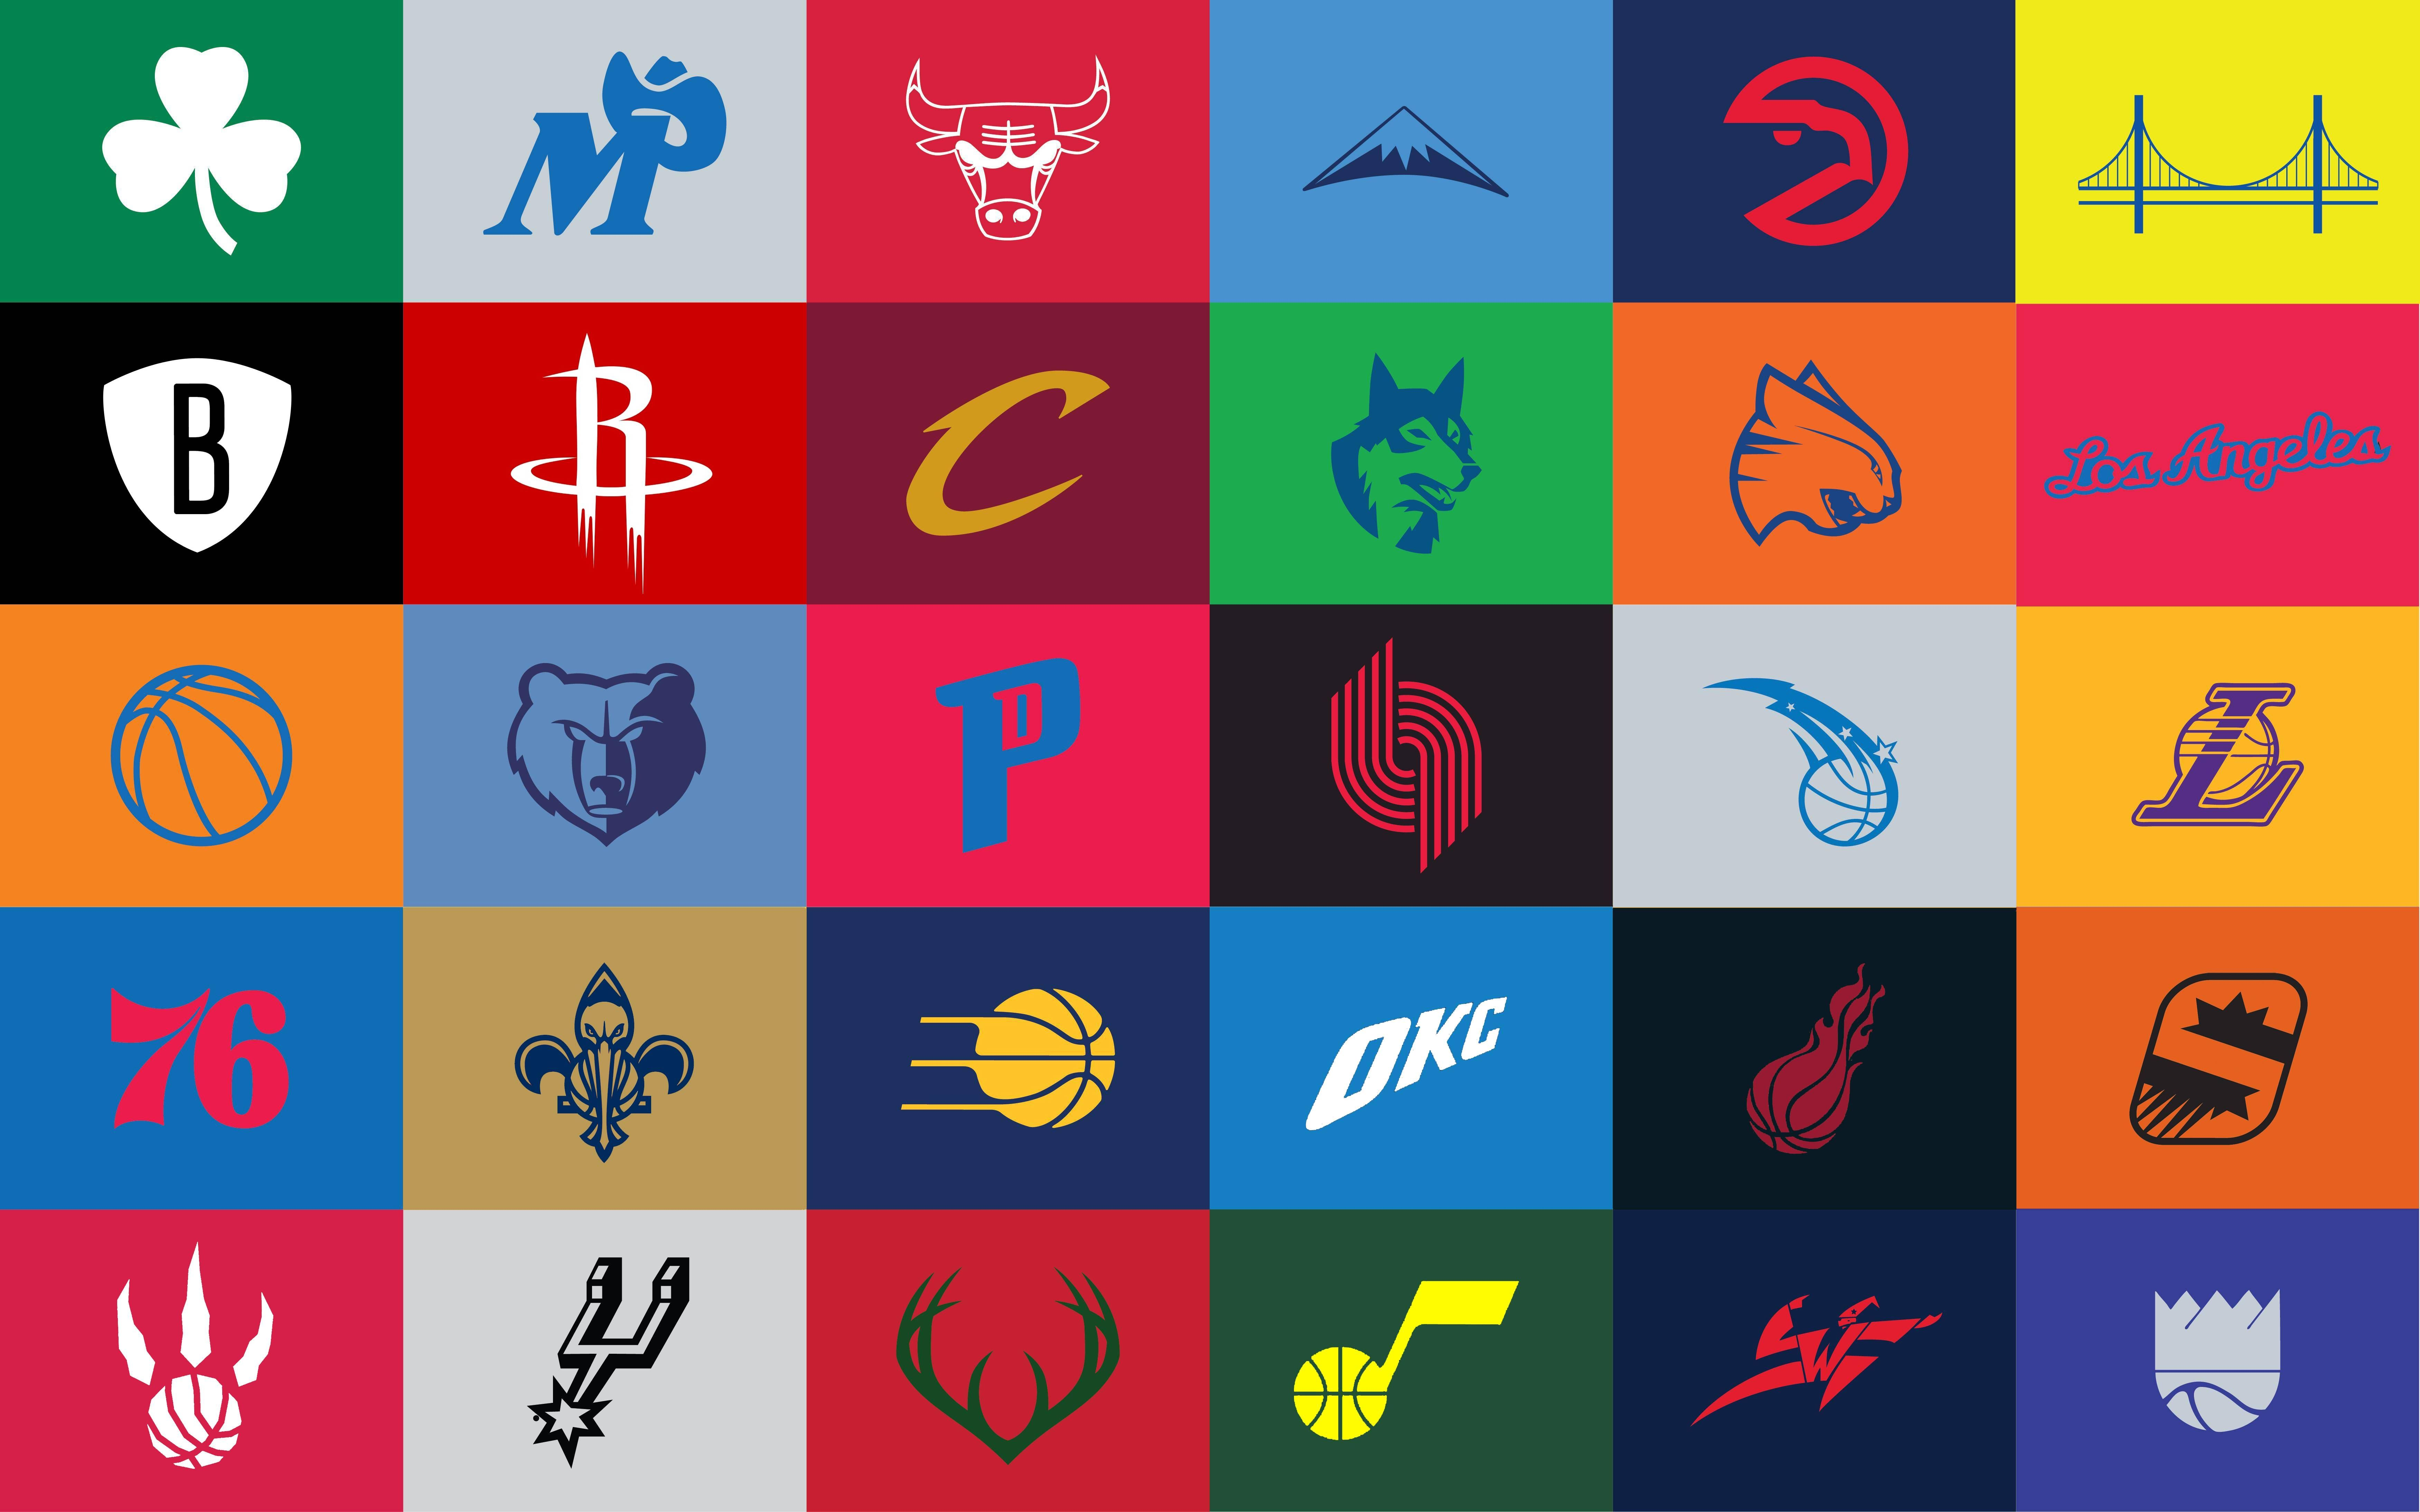 I Made A Few Adjustments To The Minimalist Nba Logos Wallpaper Made By U Dyoon19452 A Few Months Ago Nba Logo Nba Wallpapers Team Wallpaper